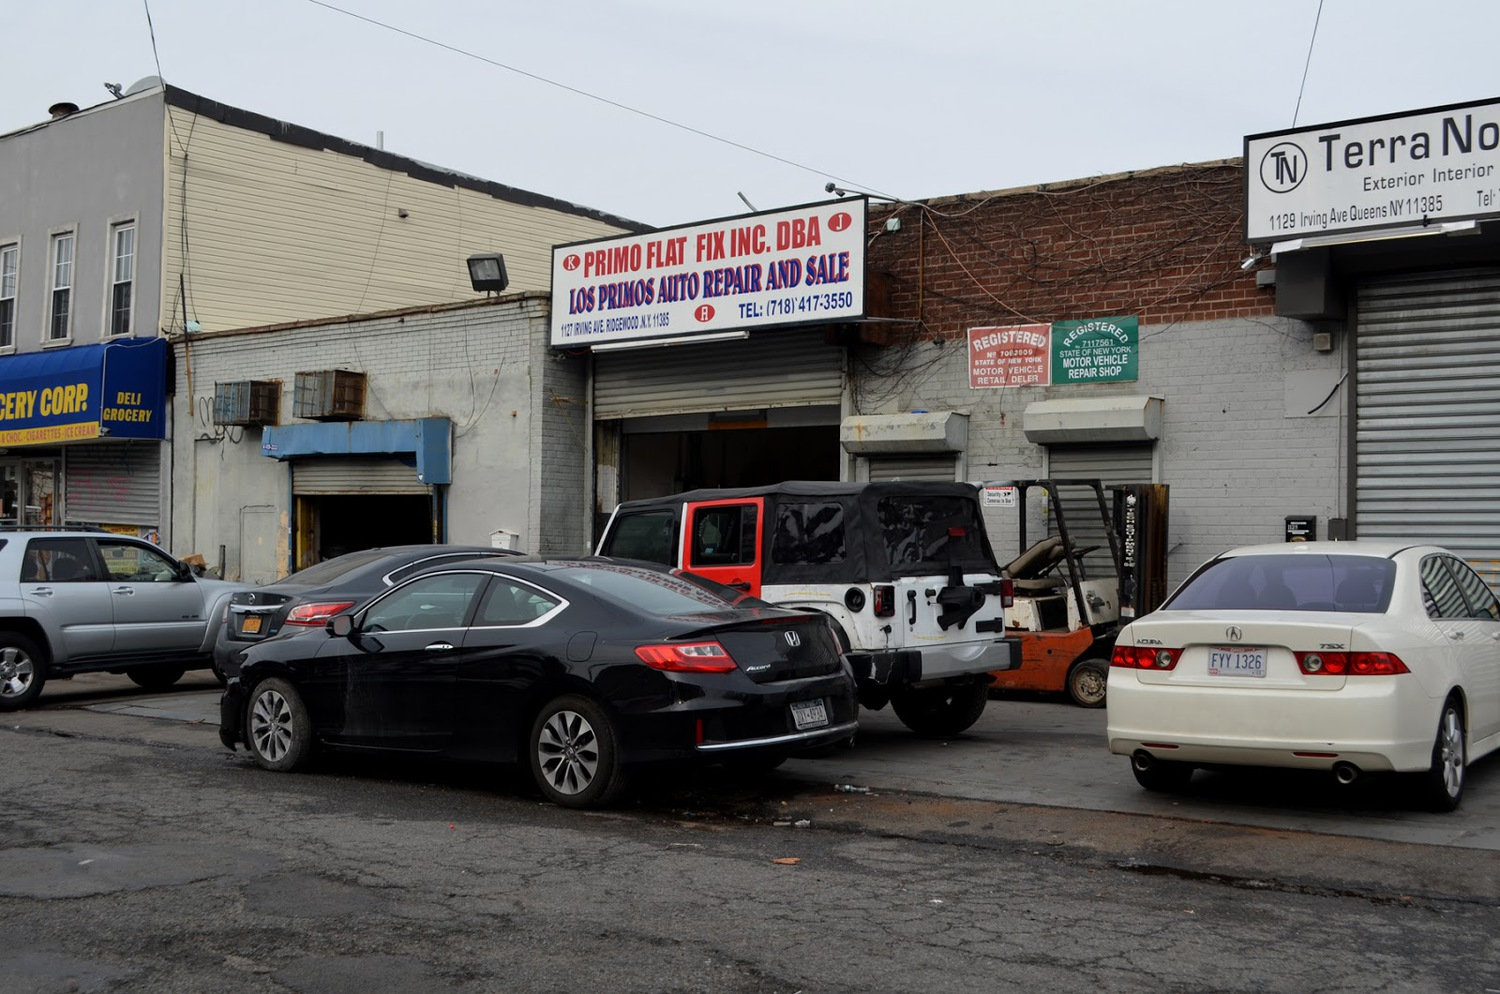 Los Primos Auto Repair and Sale (1127 Irving Ave)